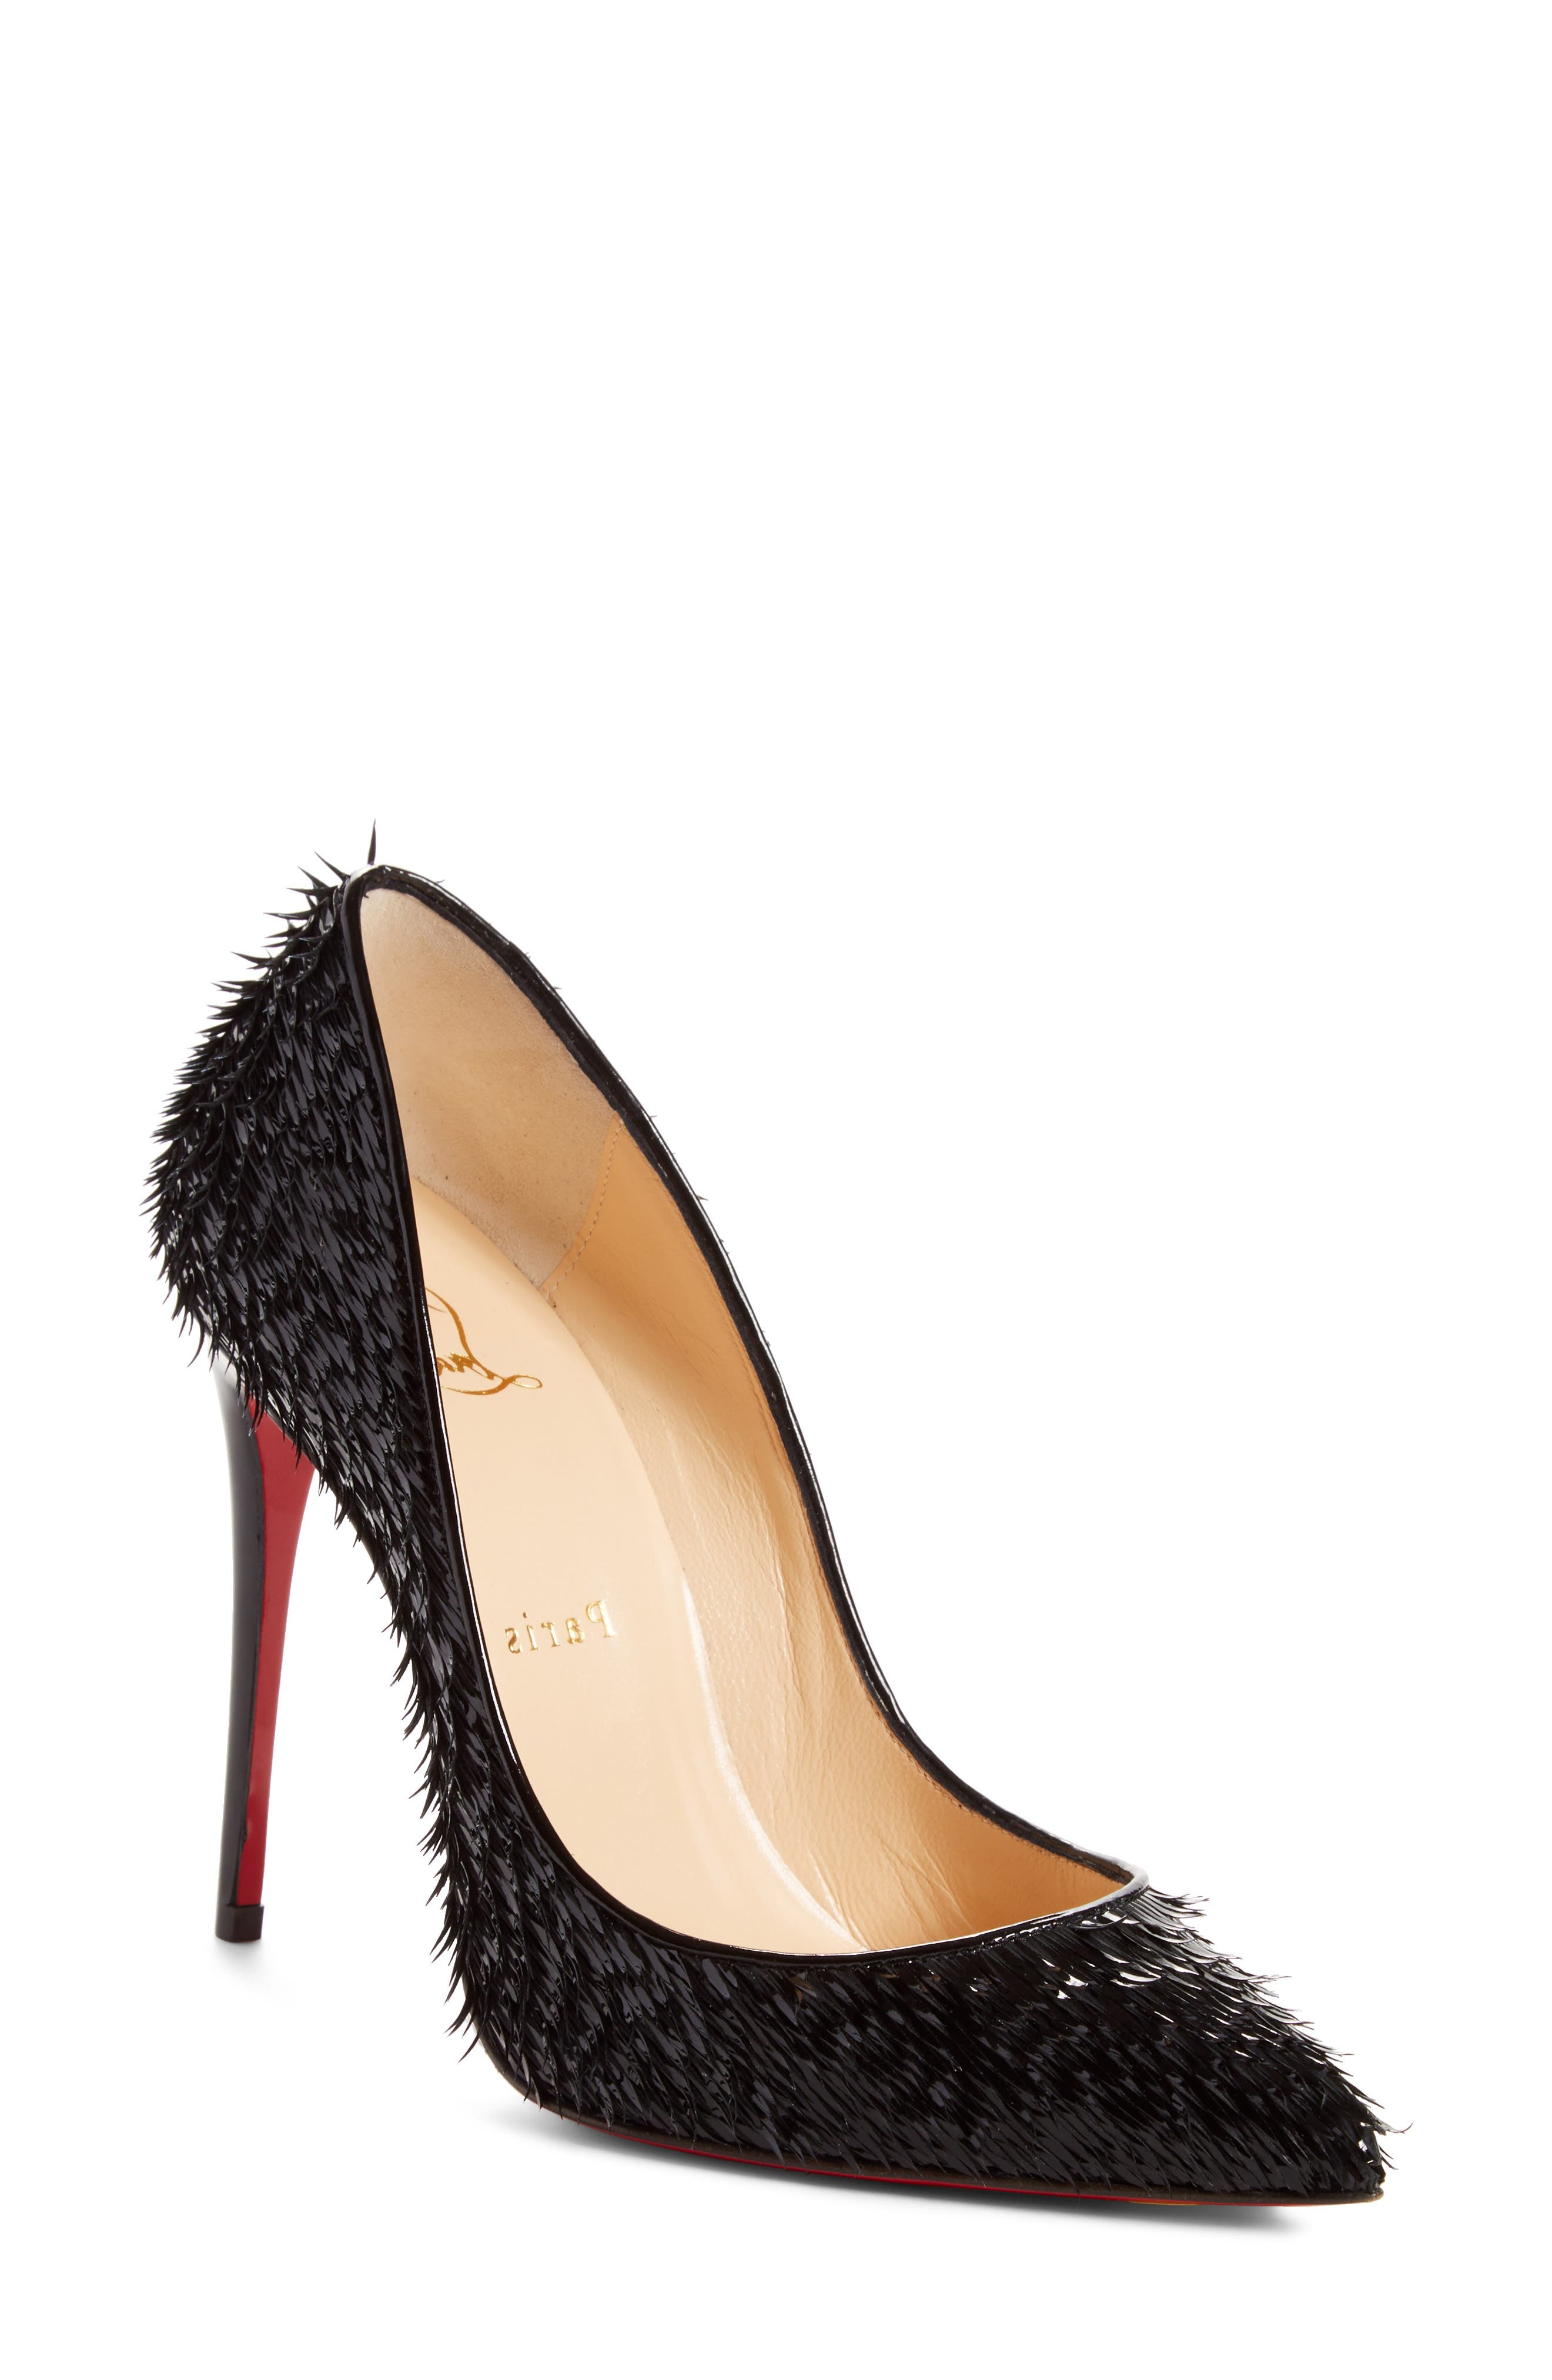 CHRISTIAN LOUBOUTIN PIGALLIE FOLLIES CROW PATENT RED SOLE PUMP, BLACK